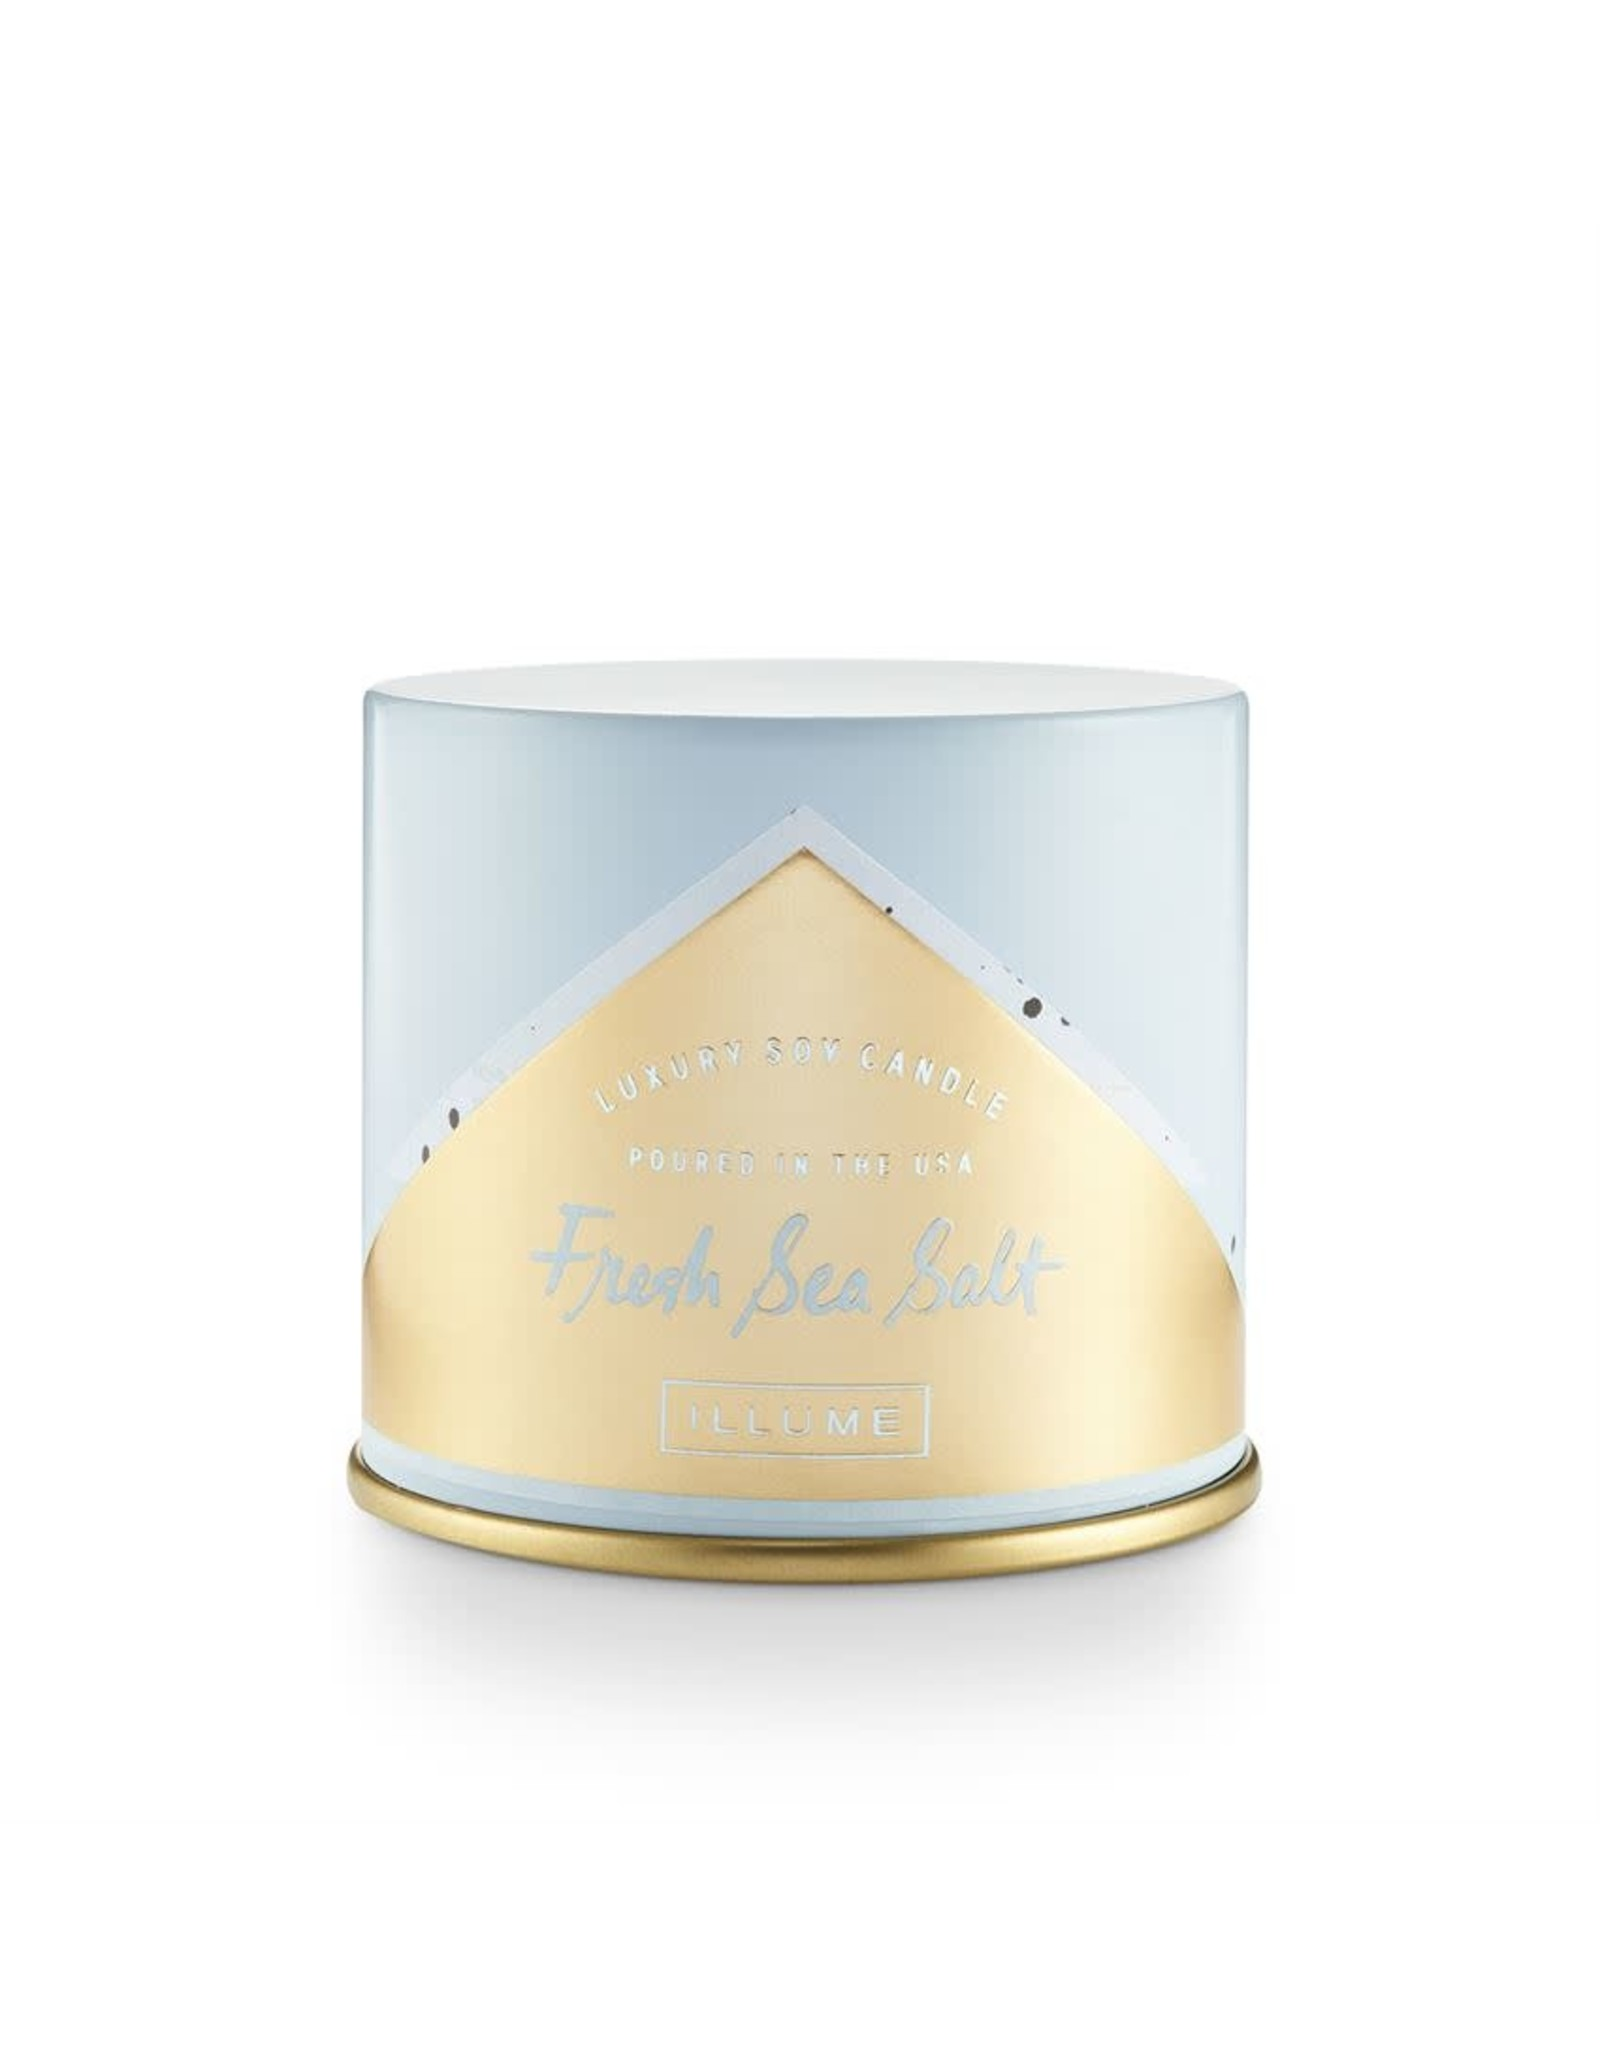 Fresh Sea Salt - Large Tin Candle